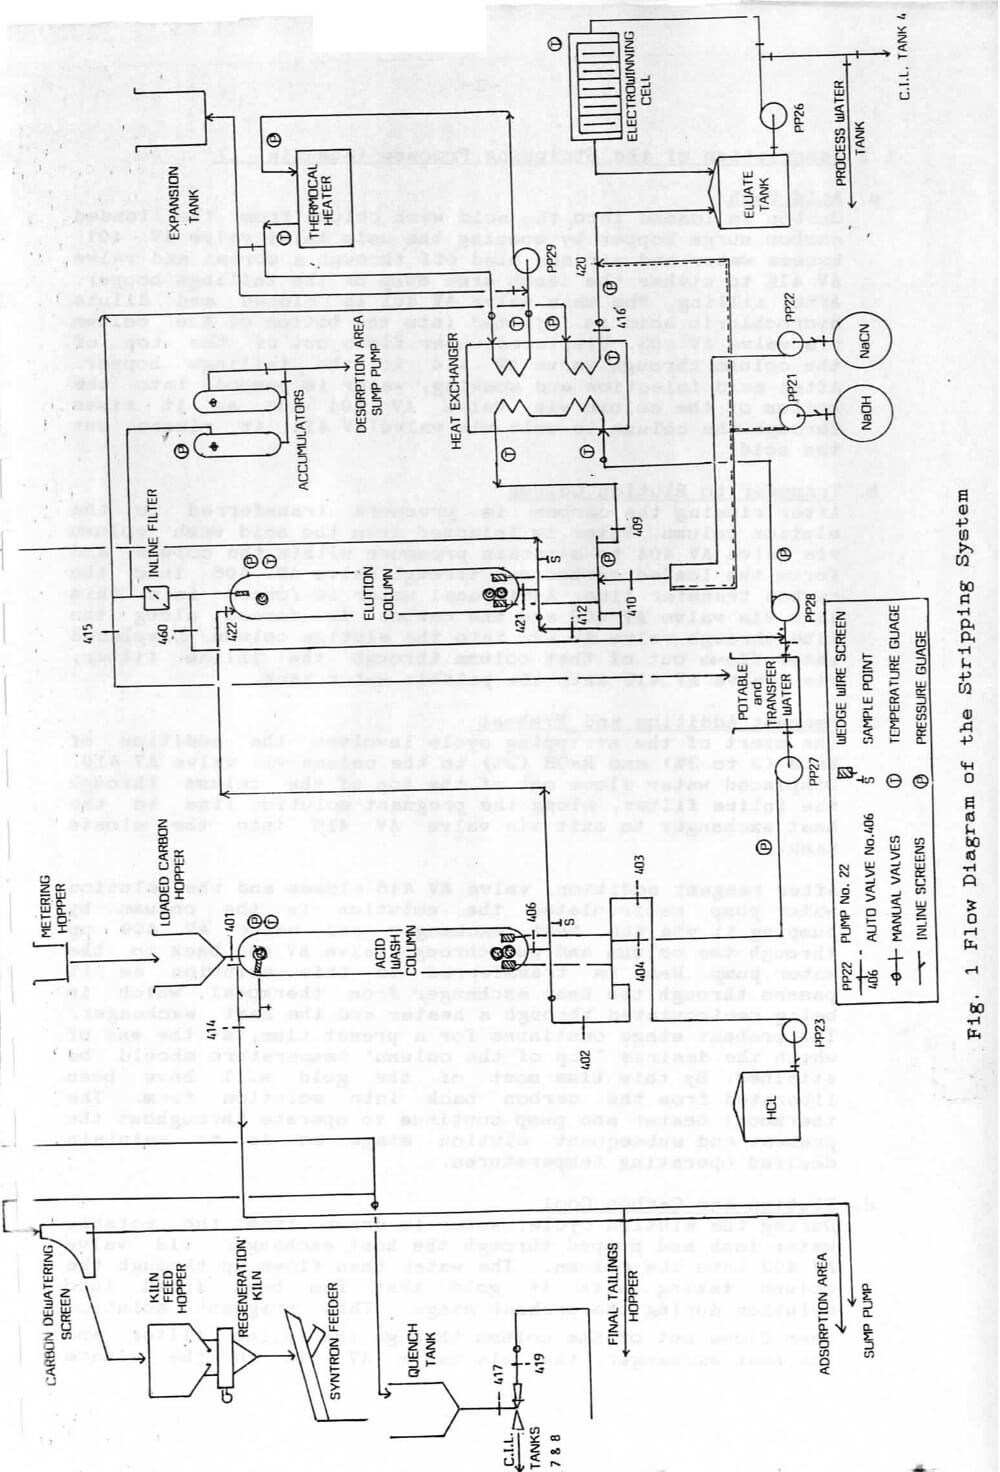 hight resolution of gold room flowsheet